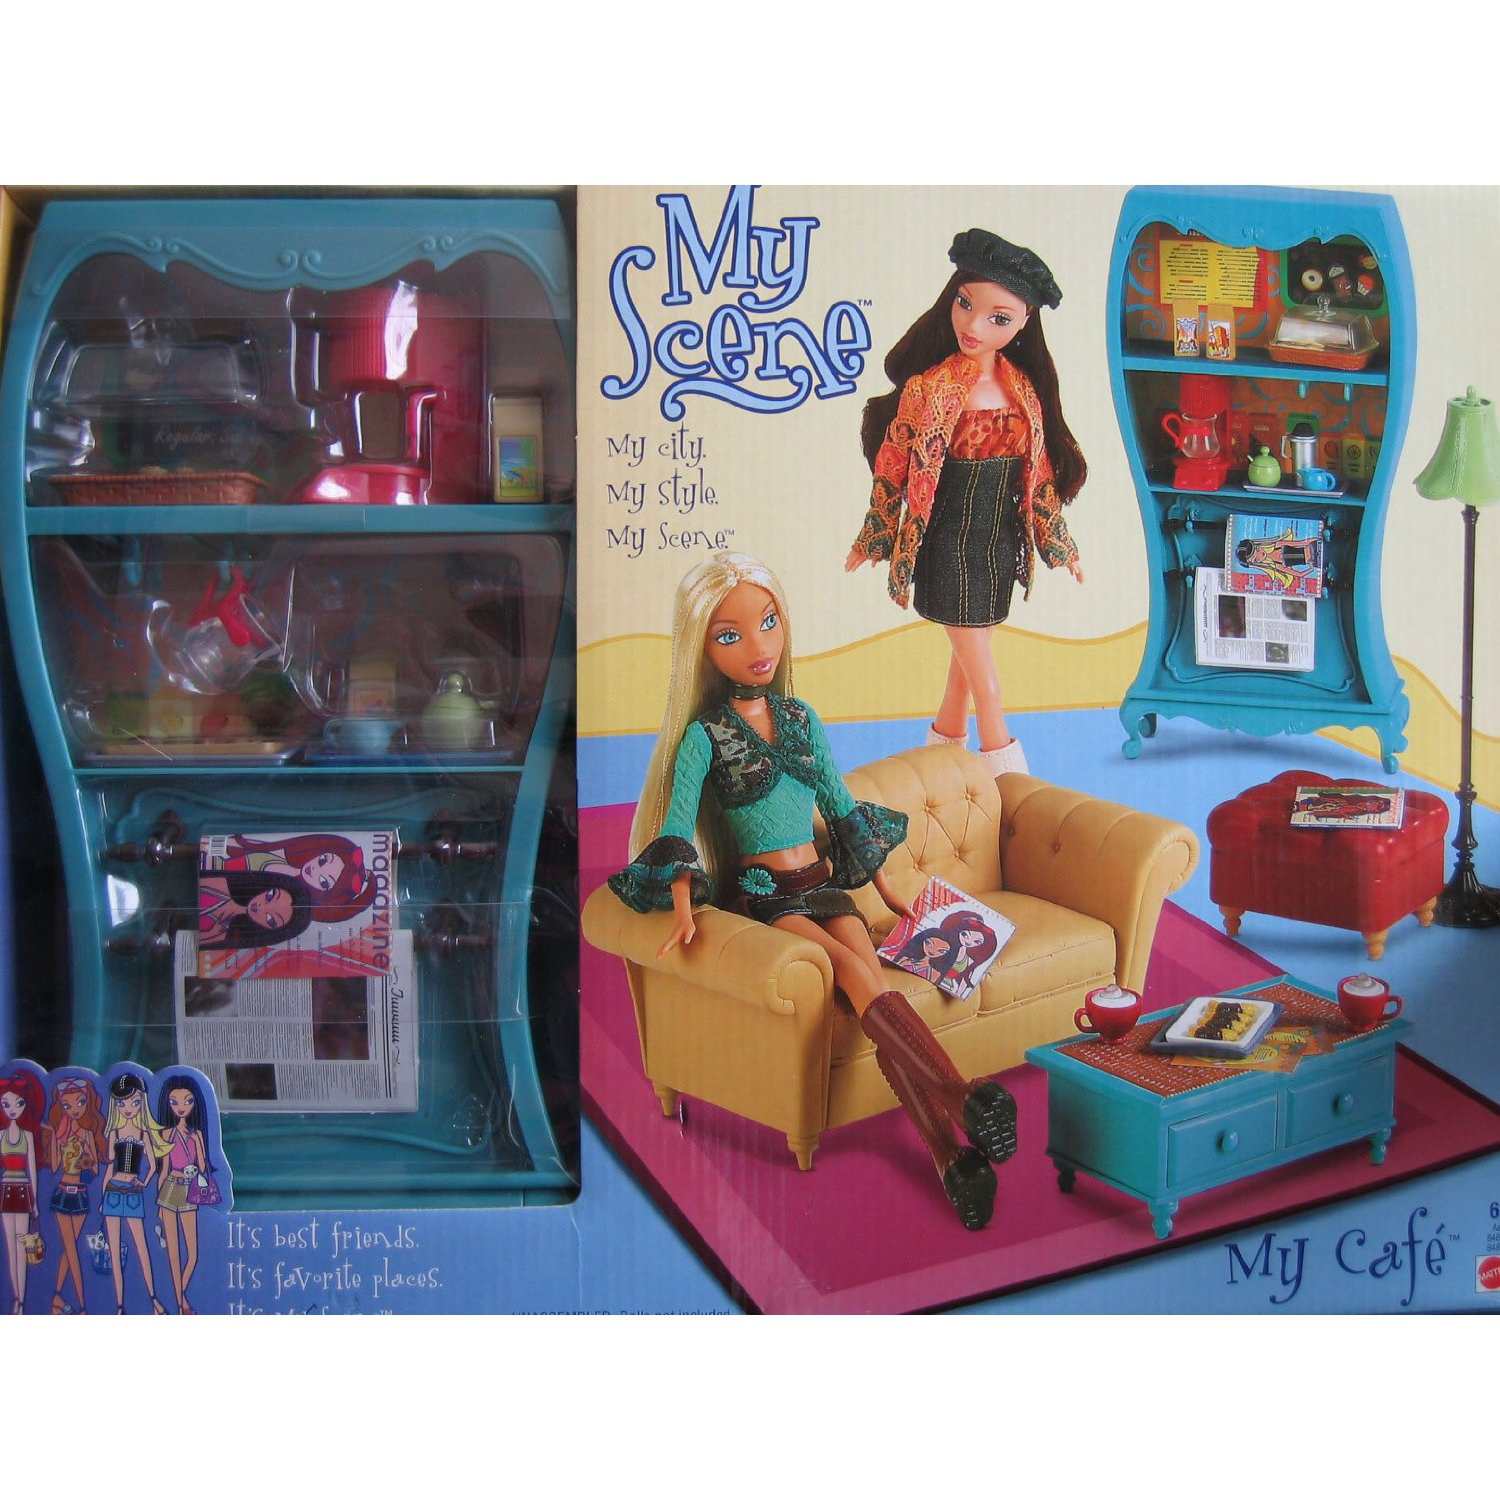 Barbie Bedroom In A Box: Inside The Barbie Craft Room